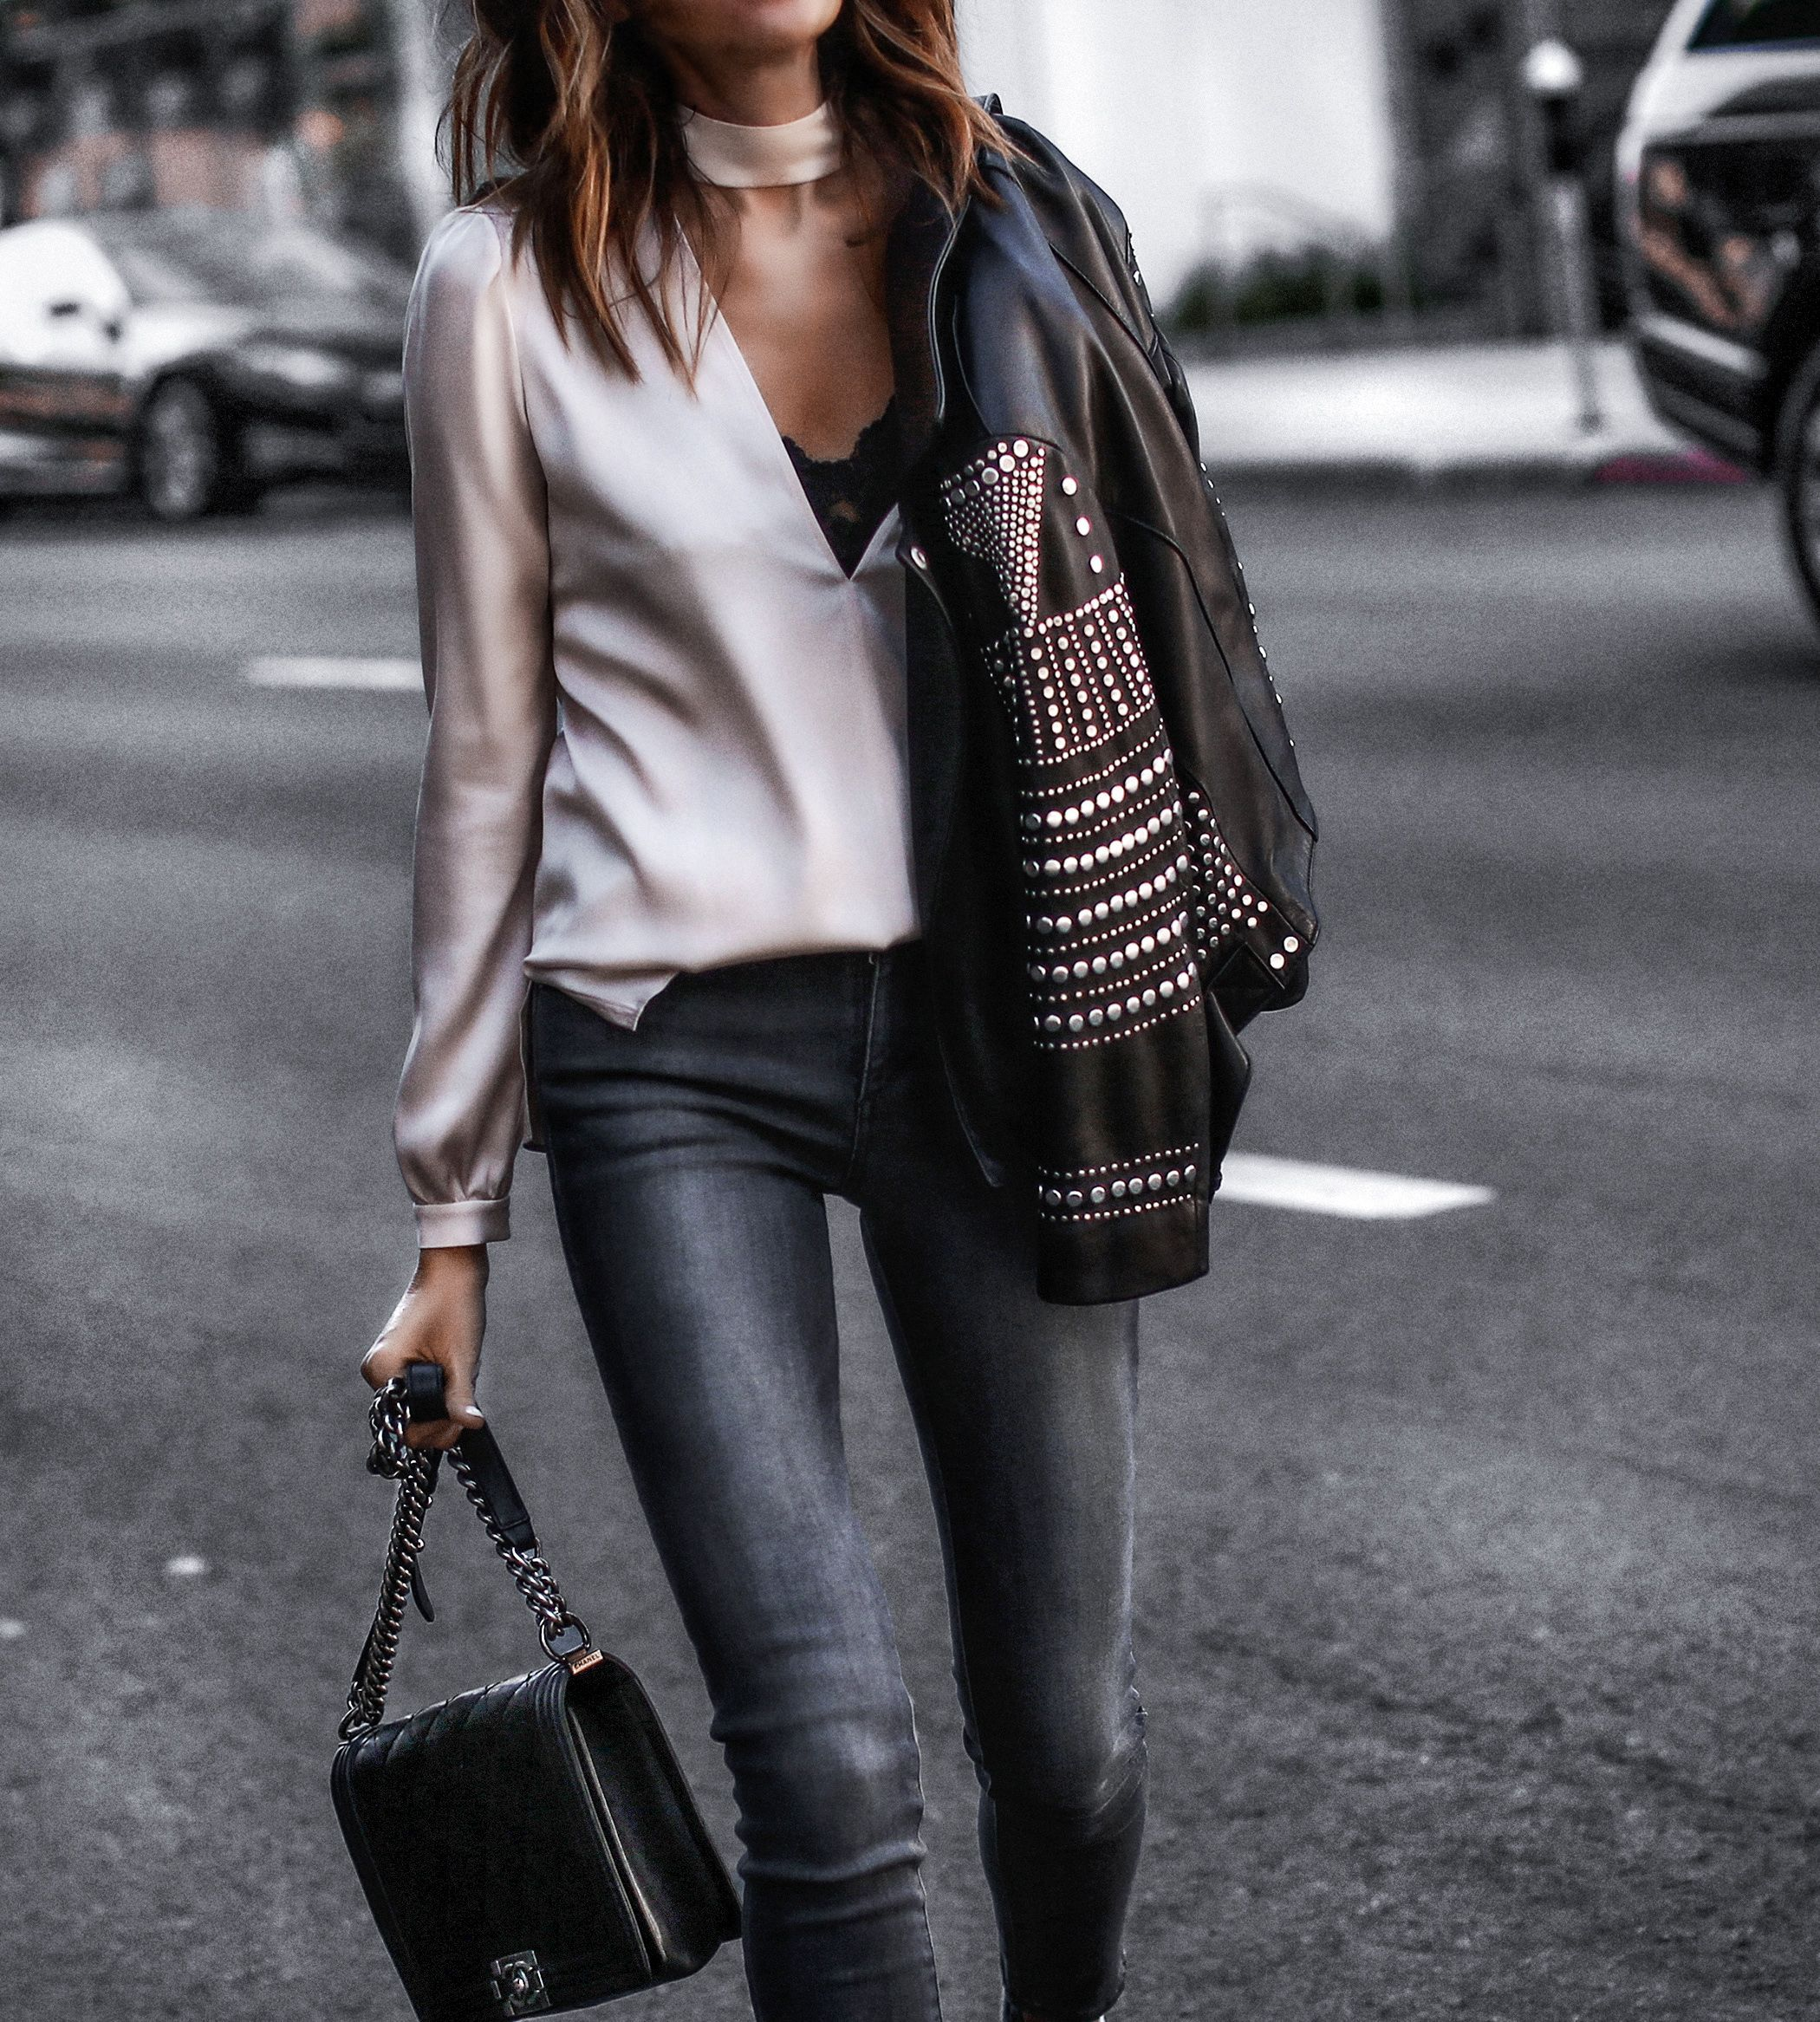 silky meets studded jeansstyle